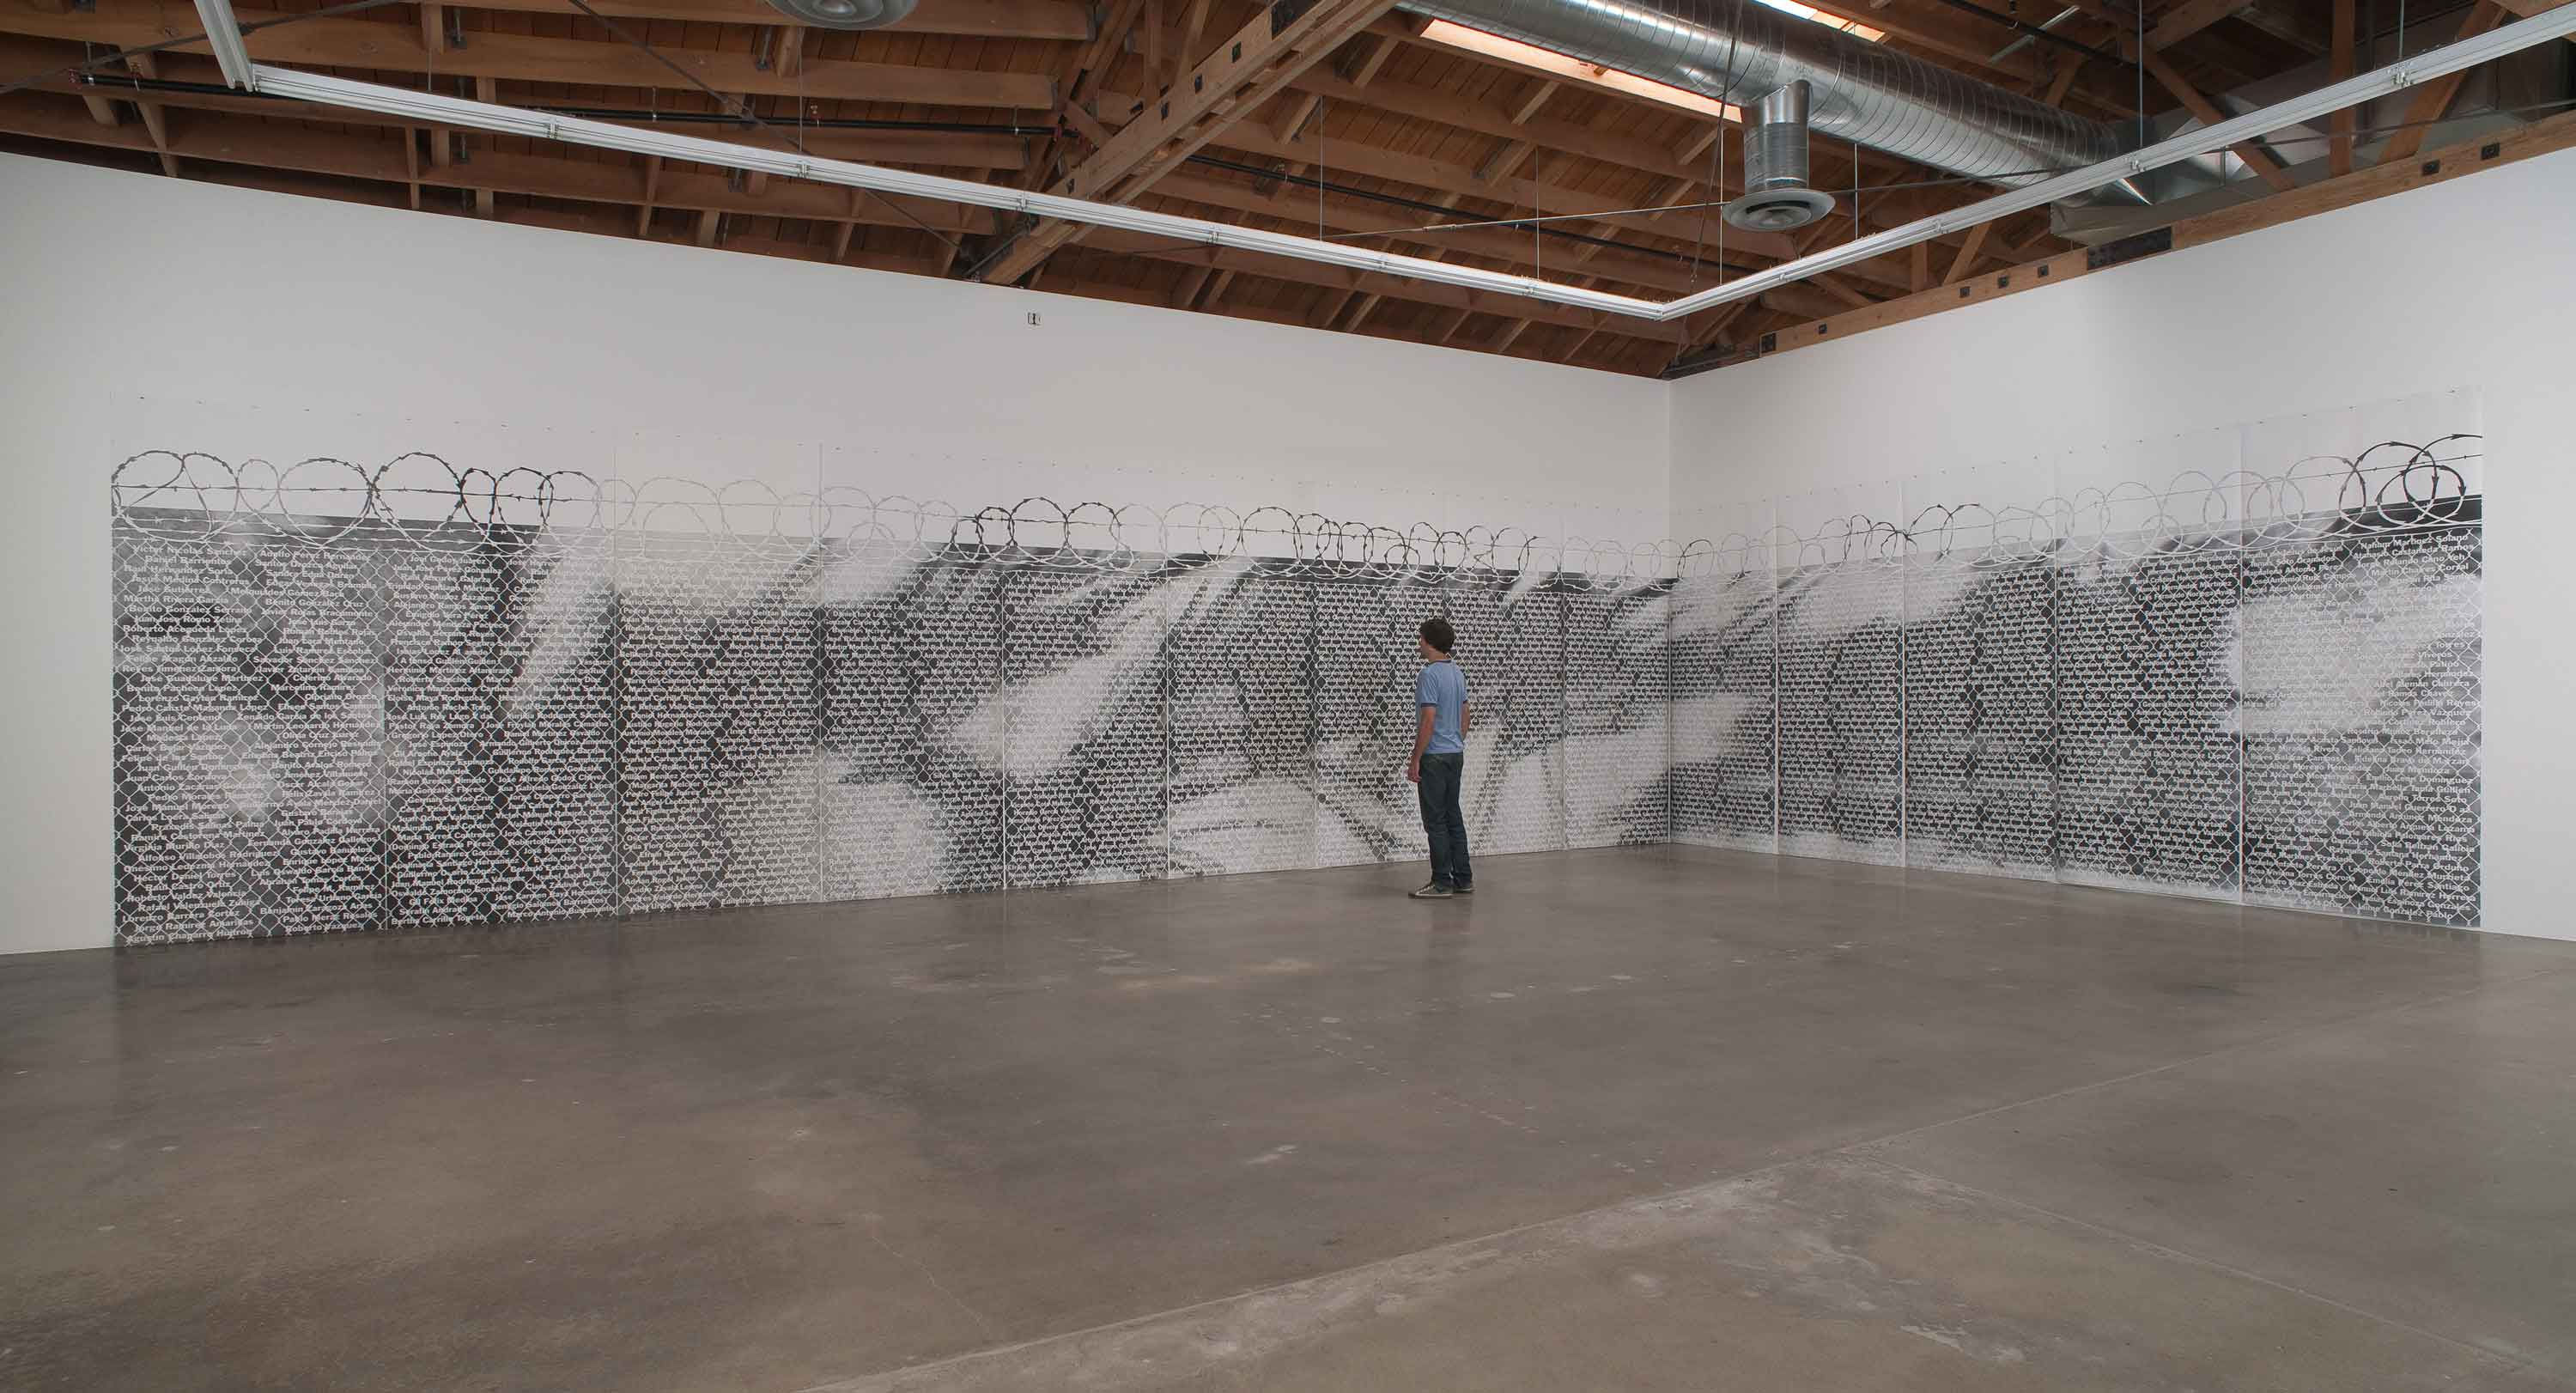 "Andrea Bowers, No Olvidado - Not Forgotten, 2010, graphite on paper, 23 drawings, 50"" x 120"" each. Photo credit: Robert Wedemeyer. All images are courtesy of the artist and Susanne Vielmetter Los Angeles Projects."